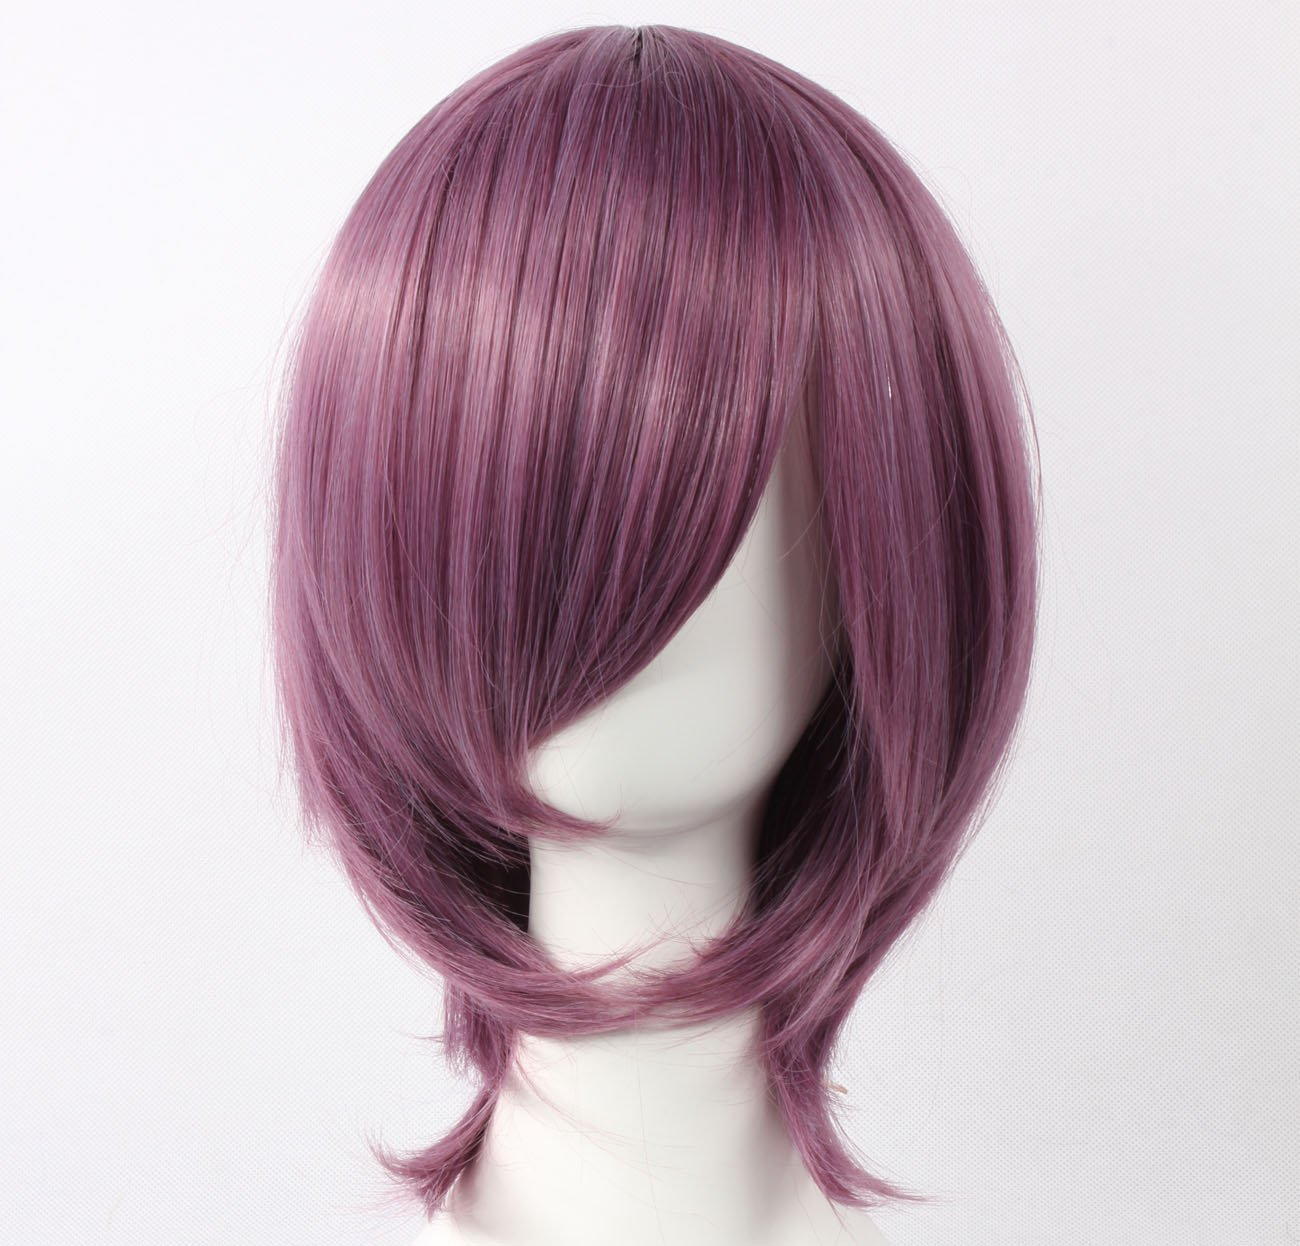 Cheap Short Dark Purple Wig Find Short Dark Purple Wig Deals On Line At Alibaba Com